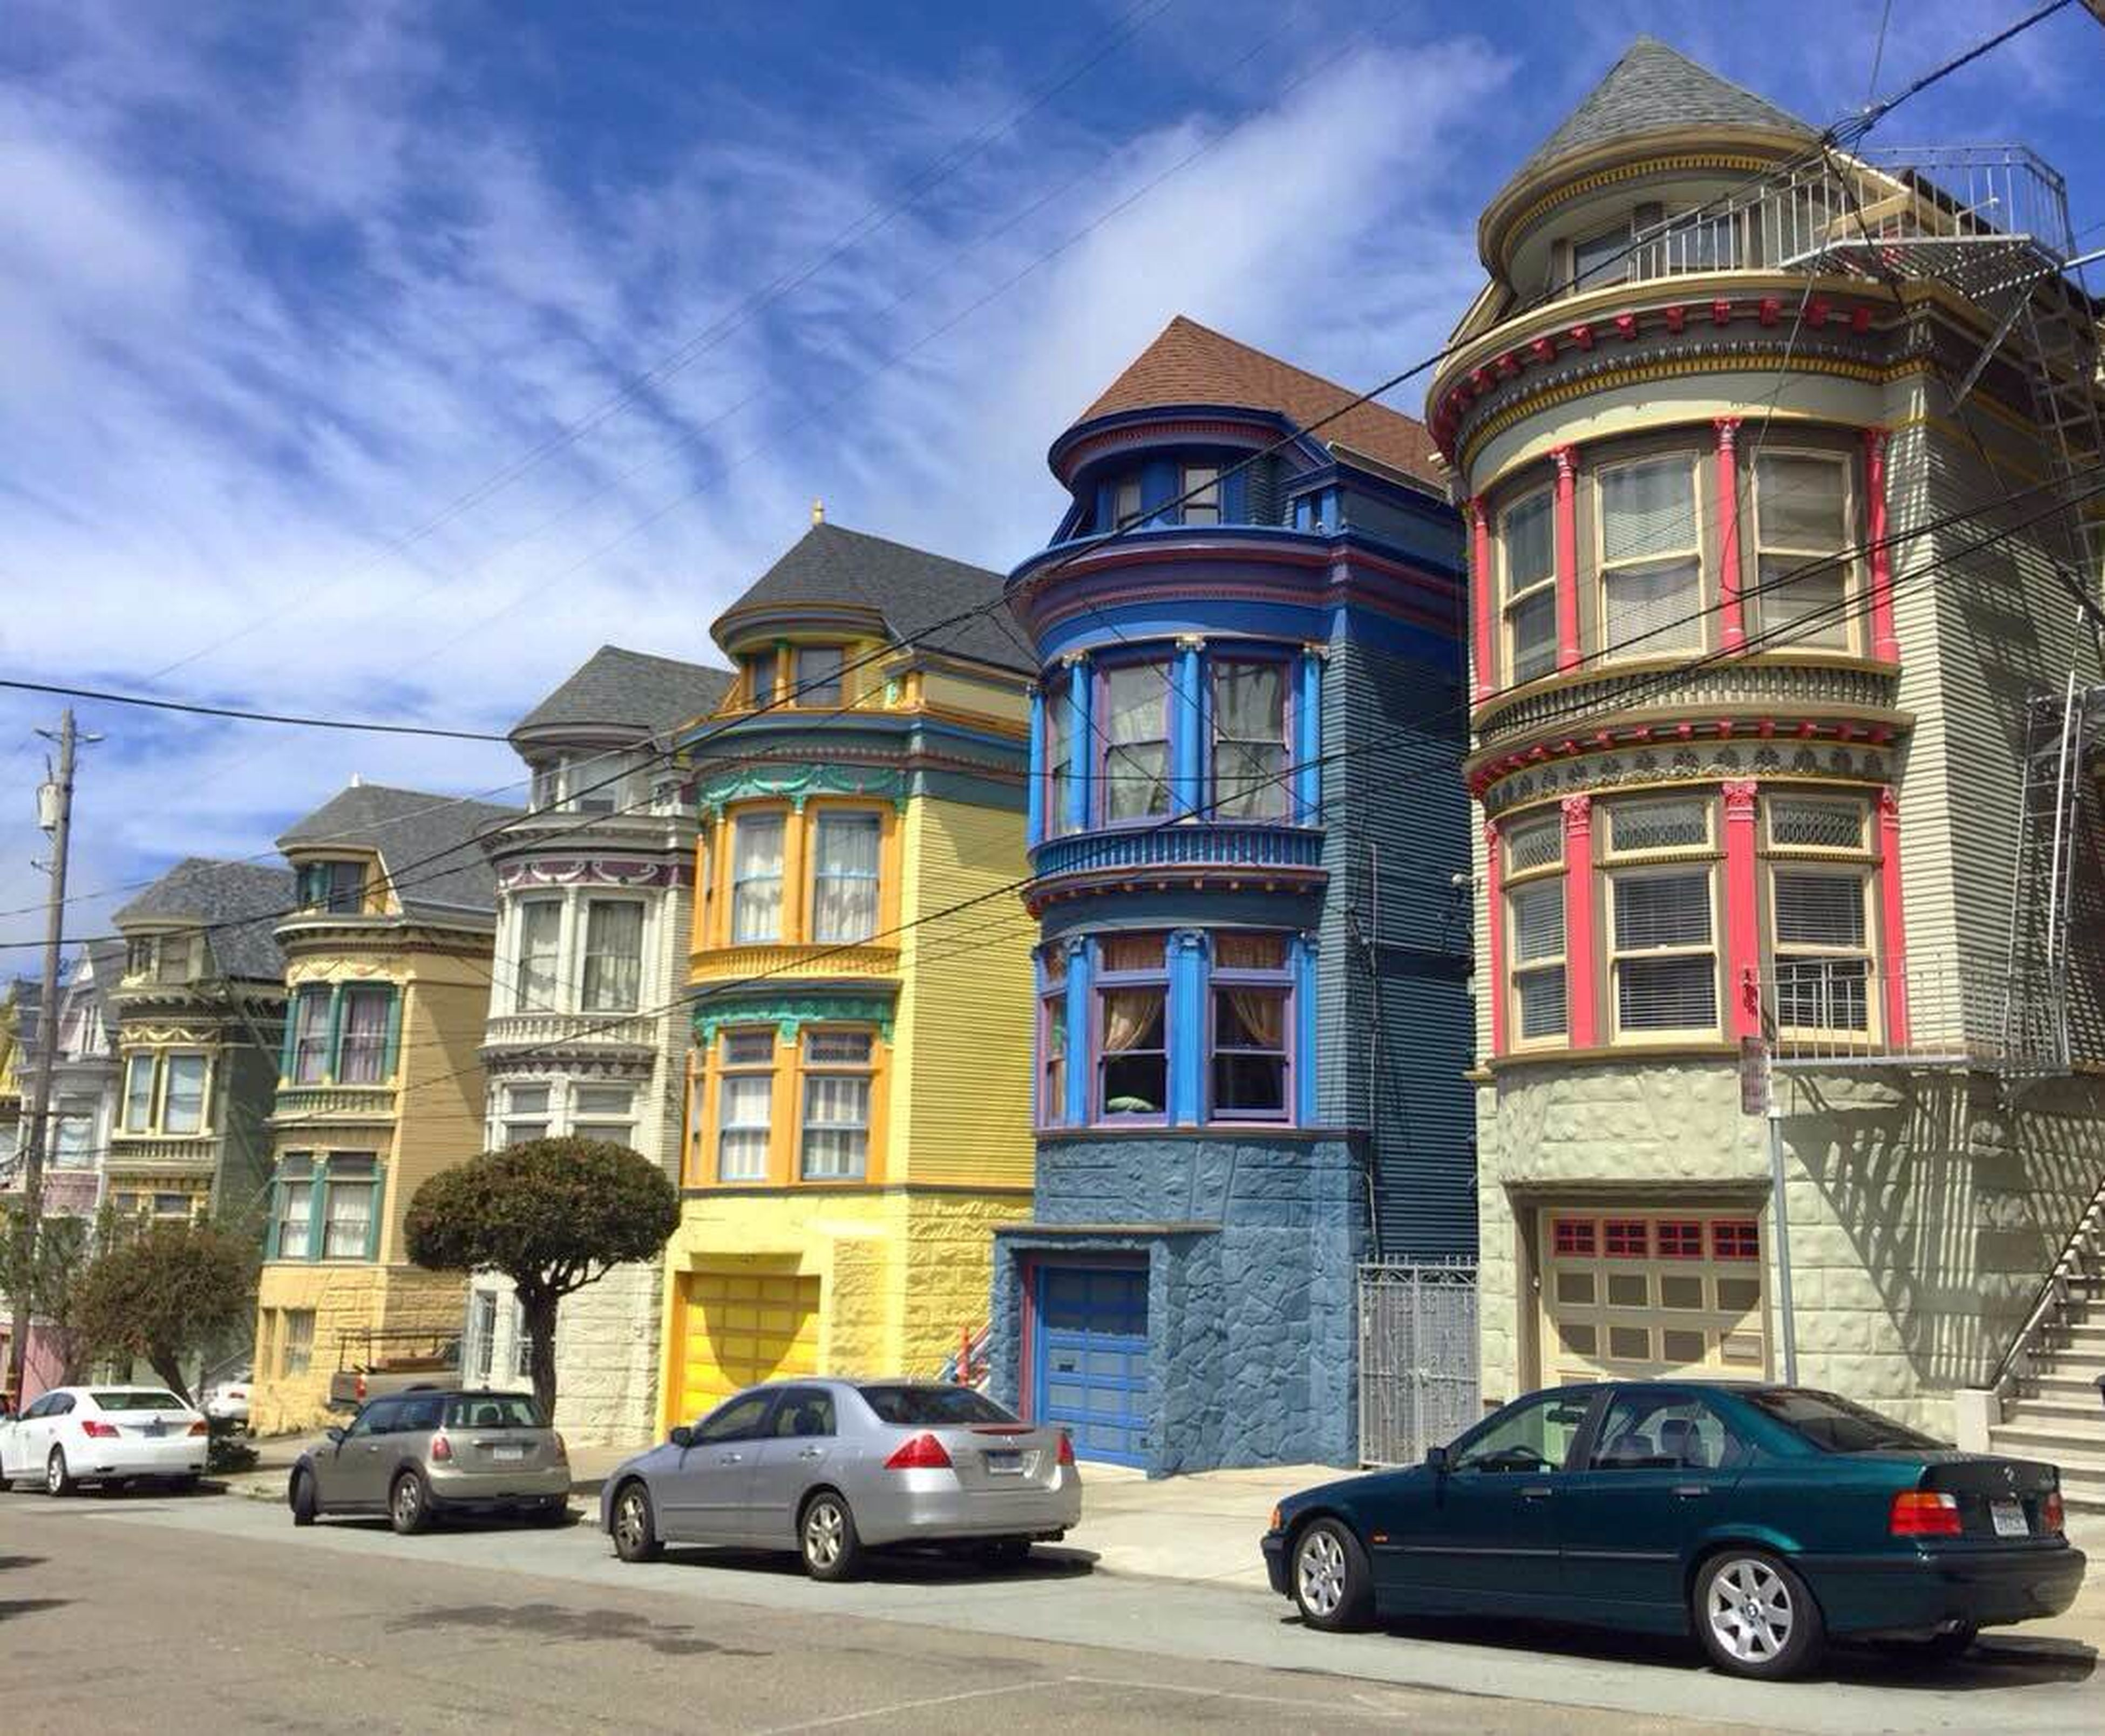 Victorian houses, the Painted ladies, in San Francisco